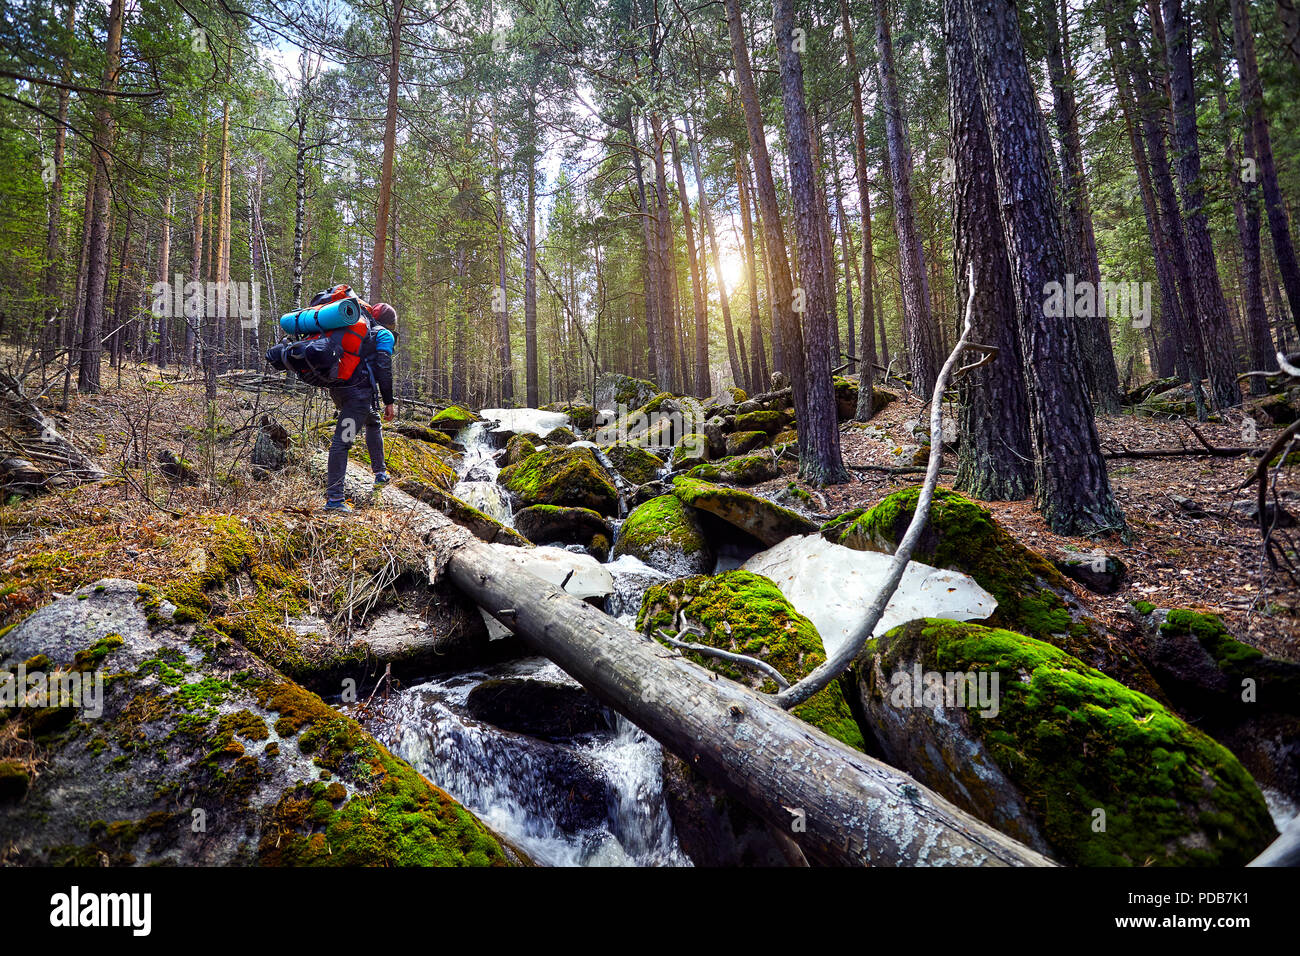 Hiker in with big backpack walking to the beautiful forest in Karkaraly national park in Central Kazakhstan - Stock Image